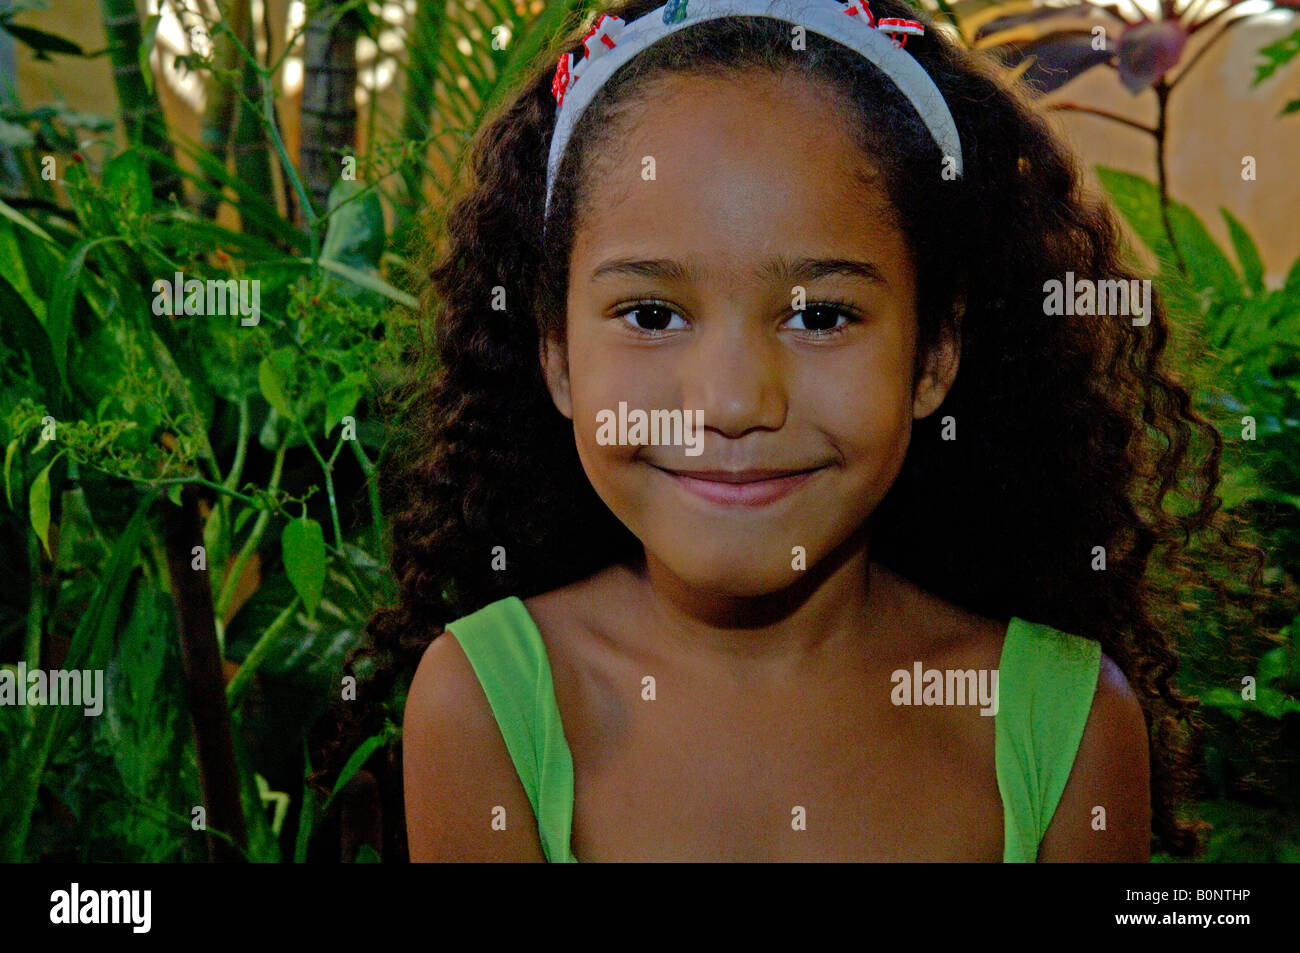 5eaf1a79b406c a young light brown, brunette Brazilian girl with long curly hair, smiling  and wearing a light green t-shirt